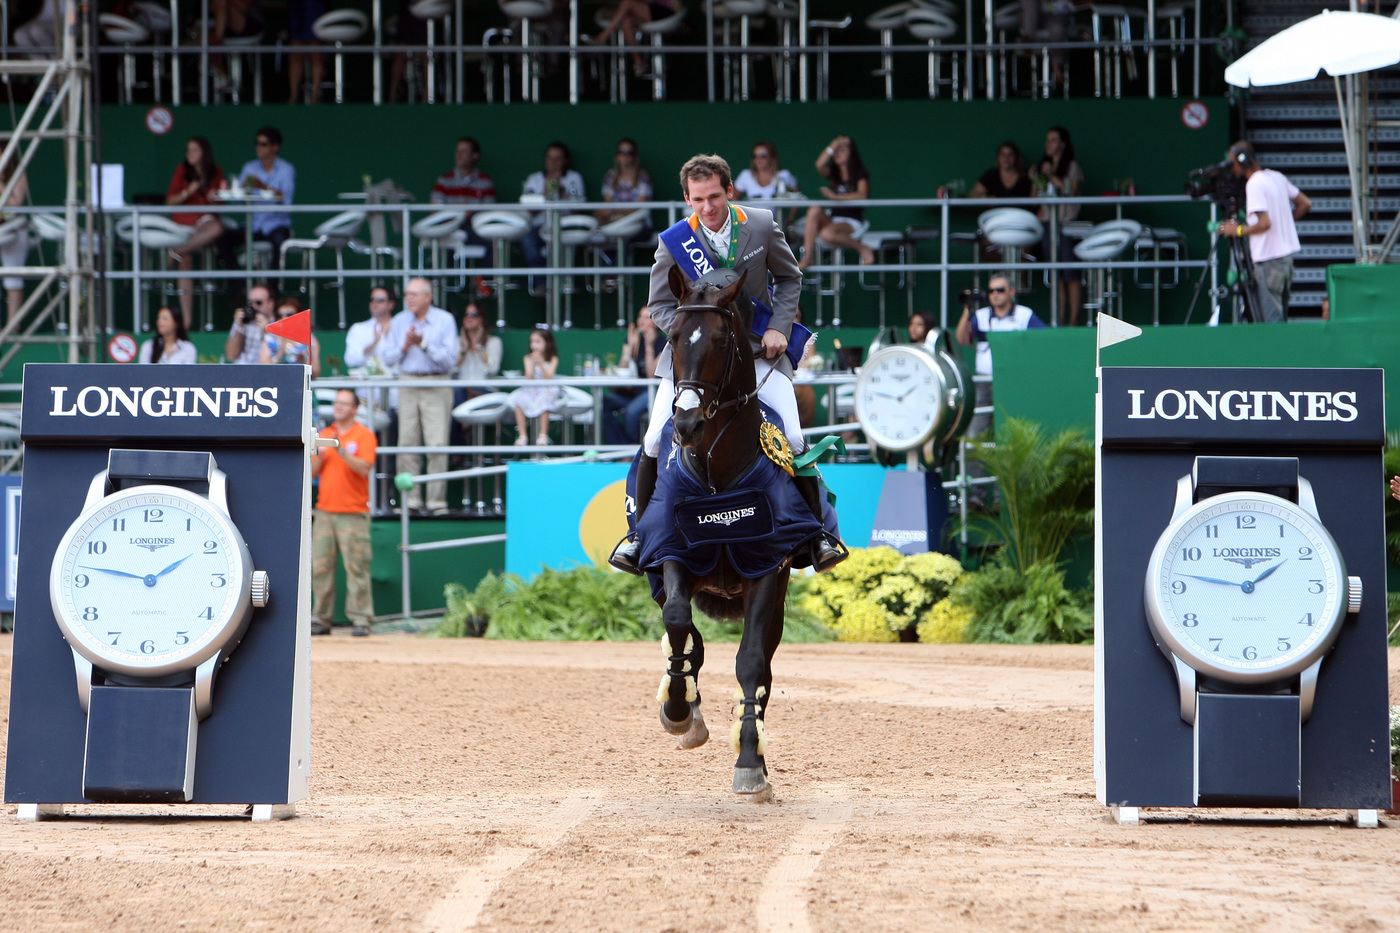 Longines Show Jumping Event: Longines, official timekeeper of the Athina Onassis Horse Show 3